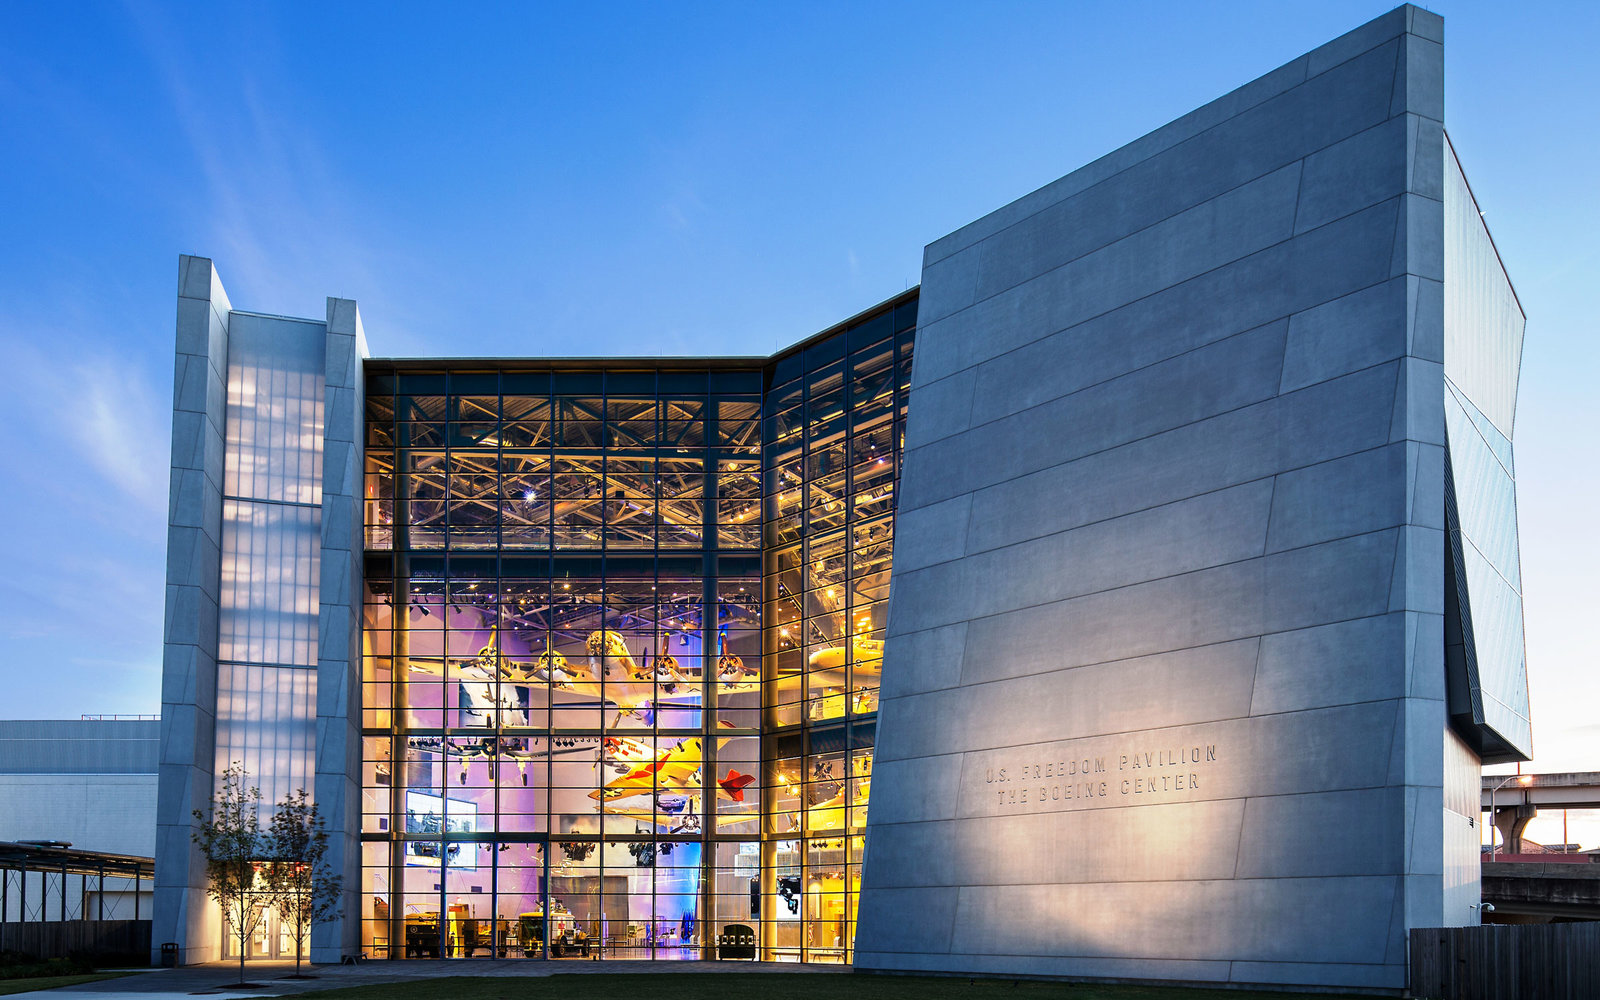 The 10 Museums Every Traveler Should Visit in the U.S.